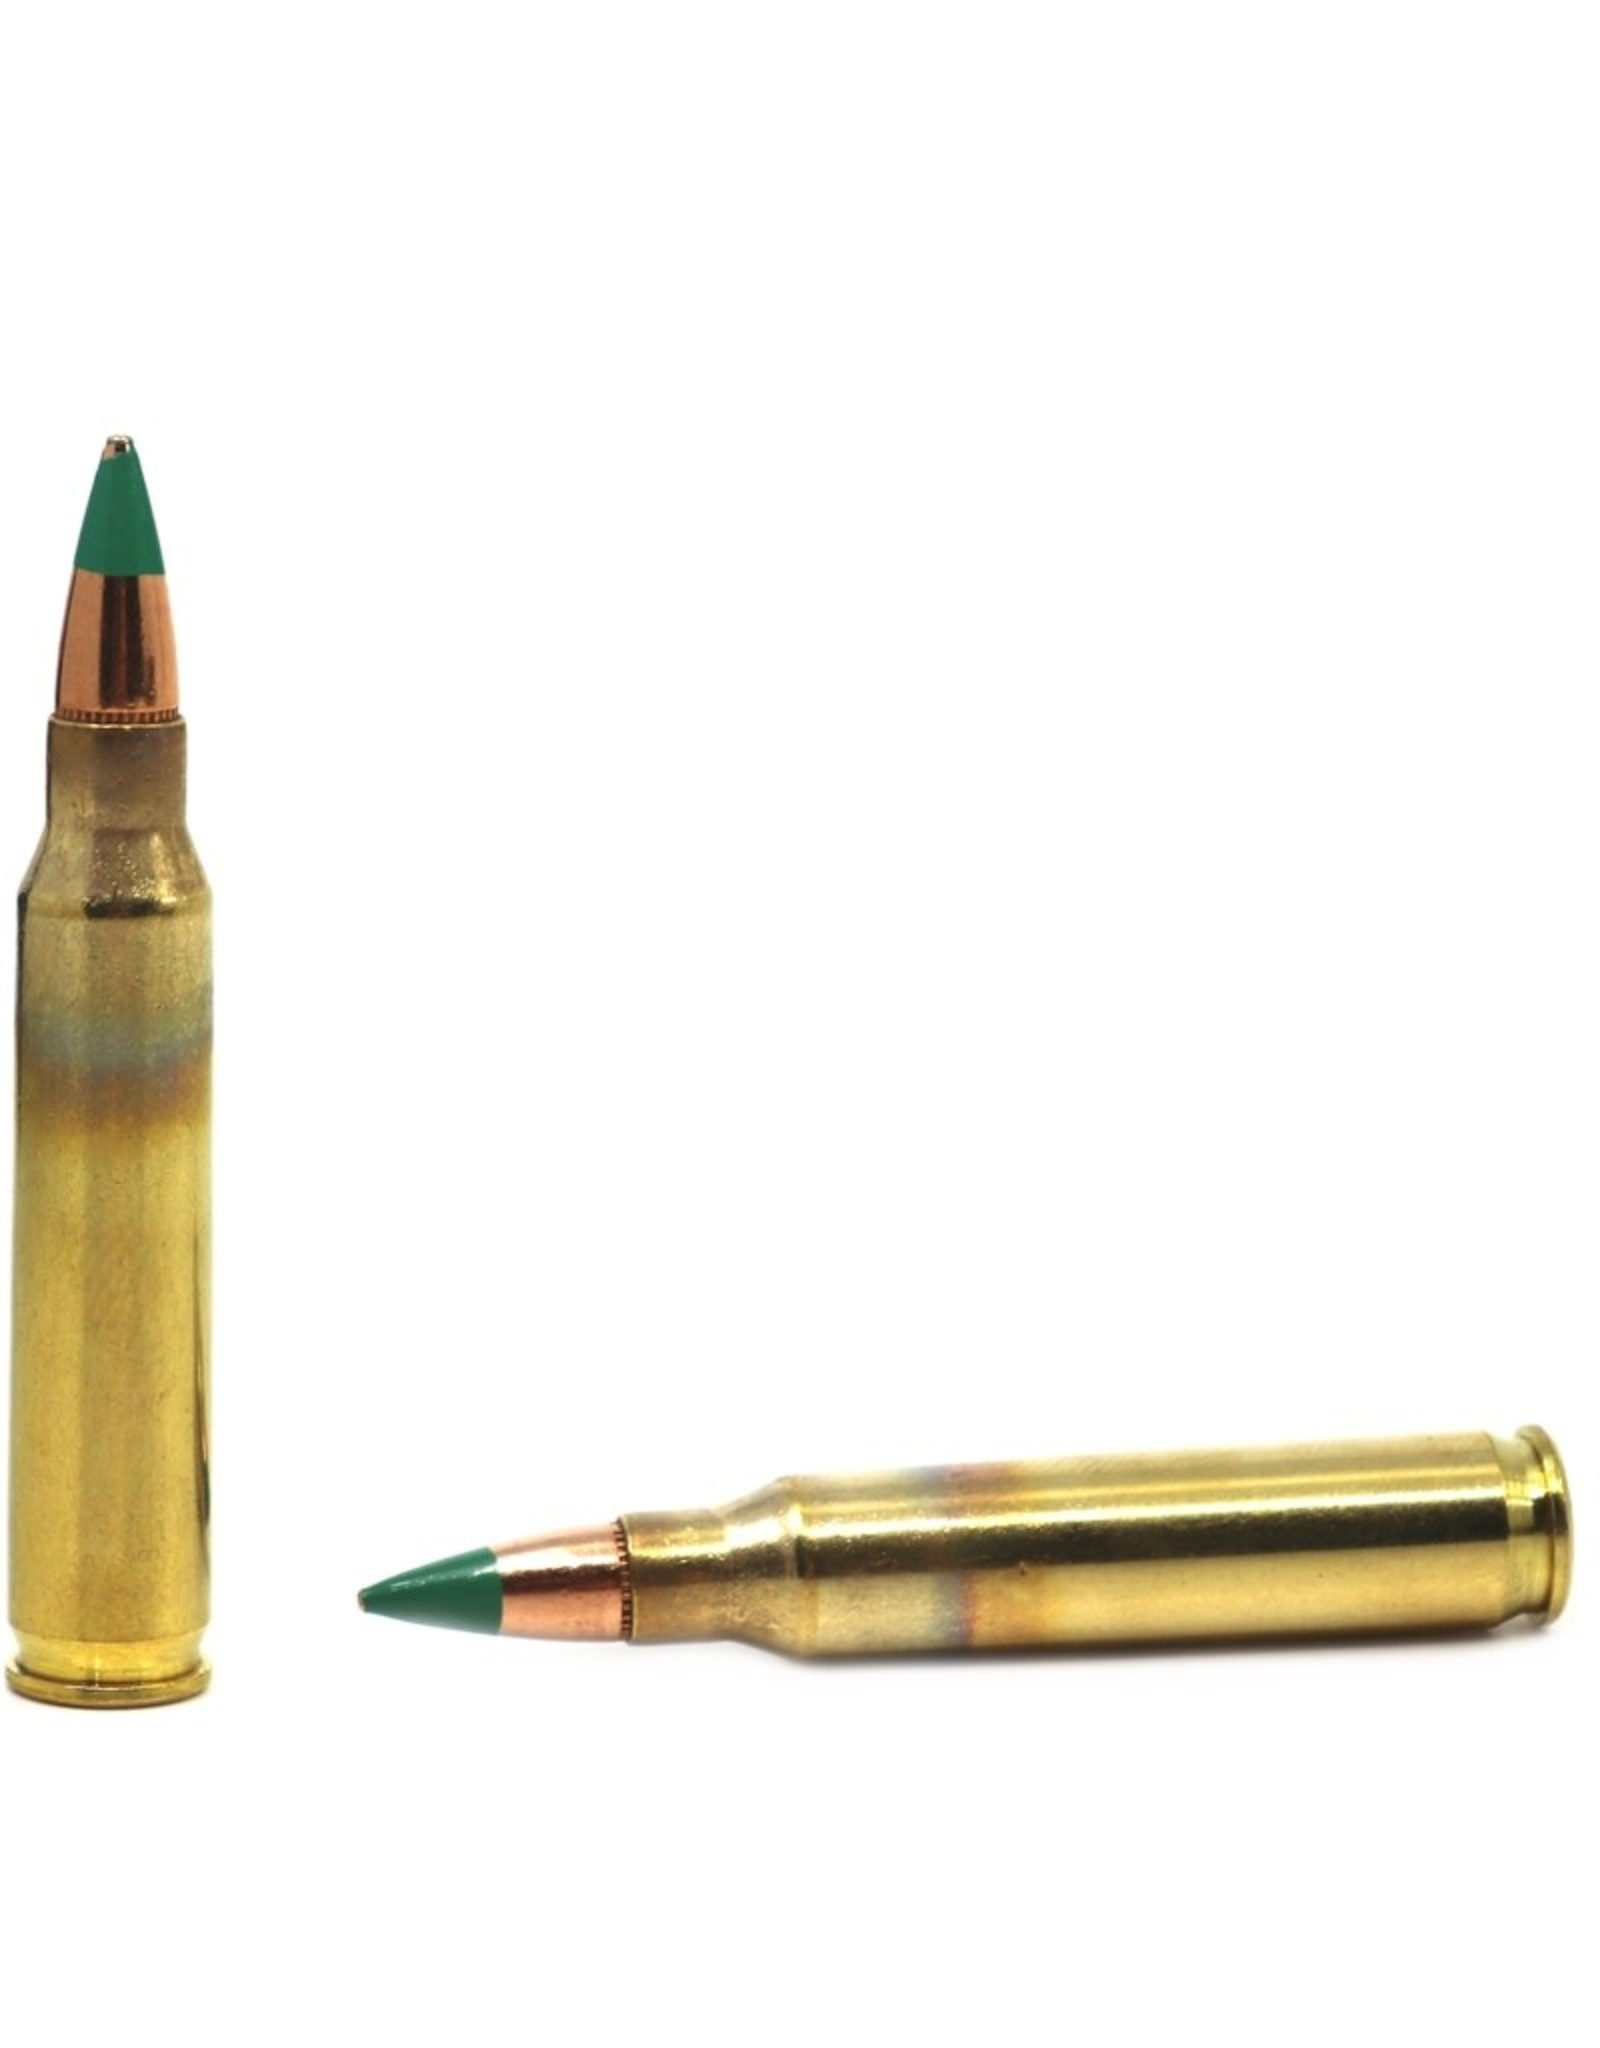 Armscore 5.56mm SS109 Green Tip 62 Gr - 20 Count